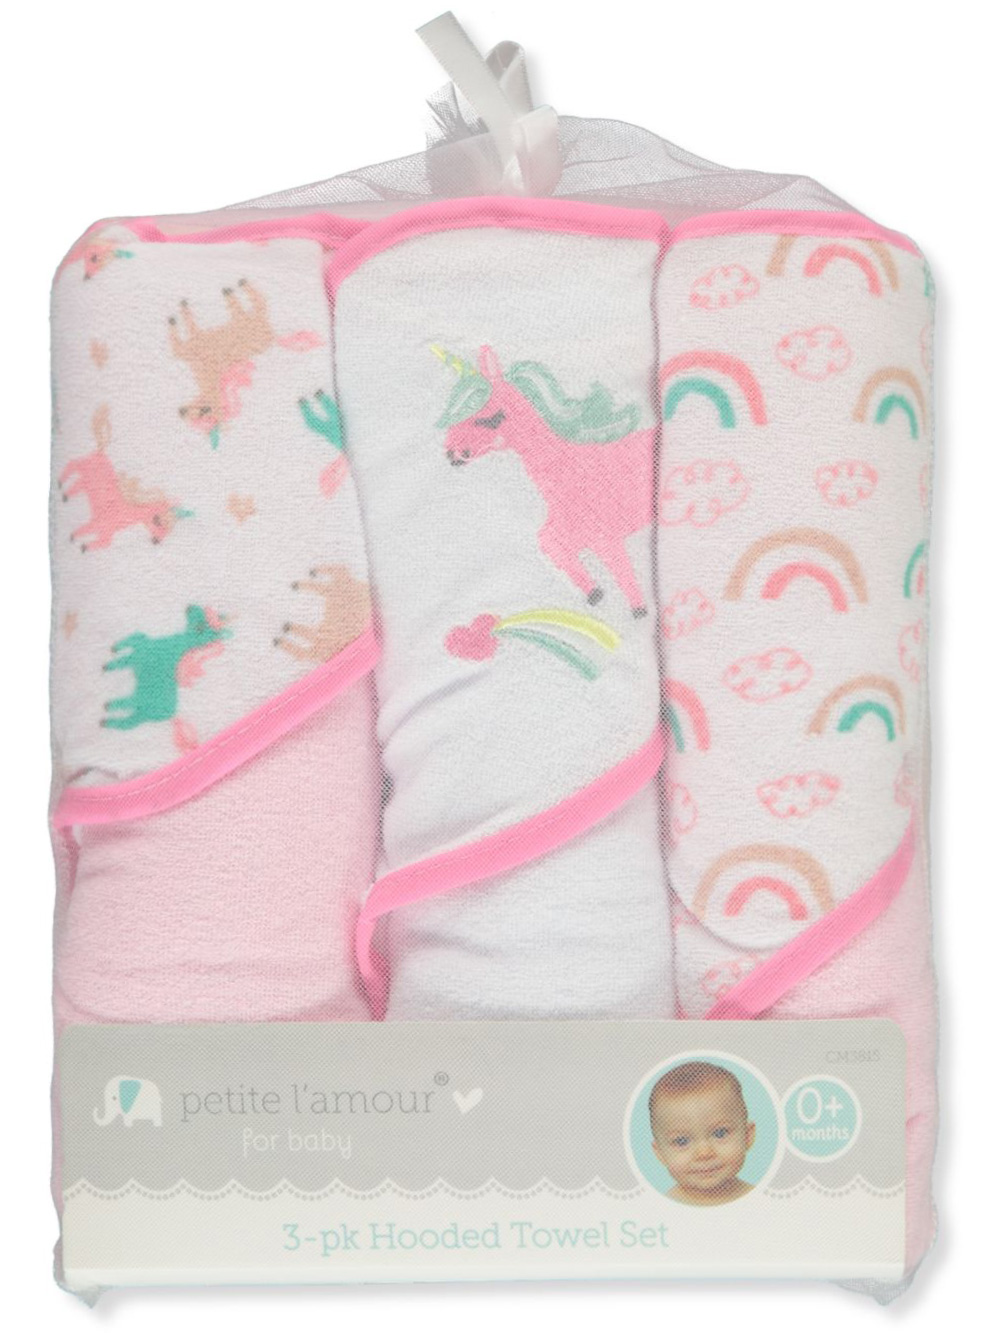 Towels 3-Pack Hooded